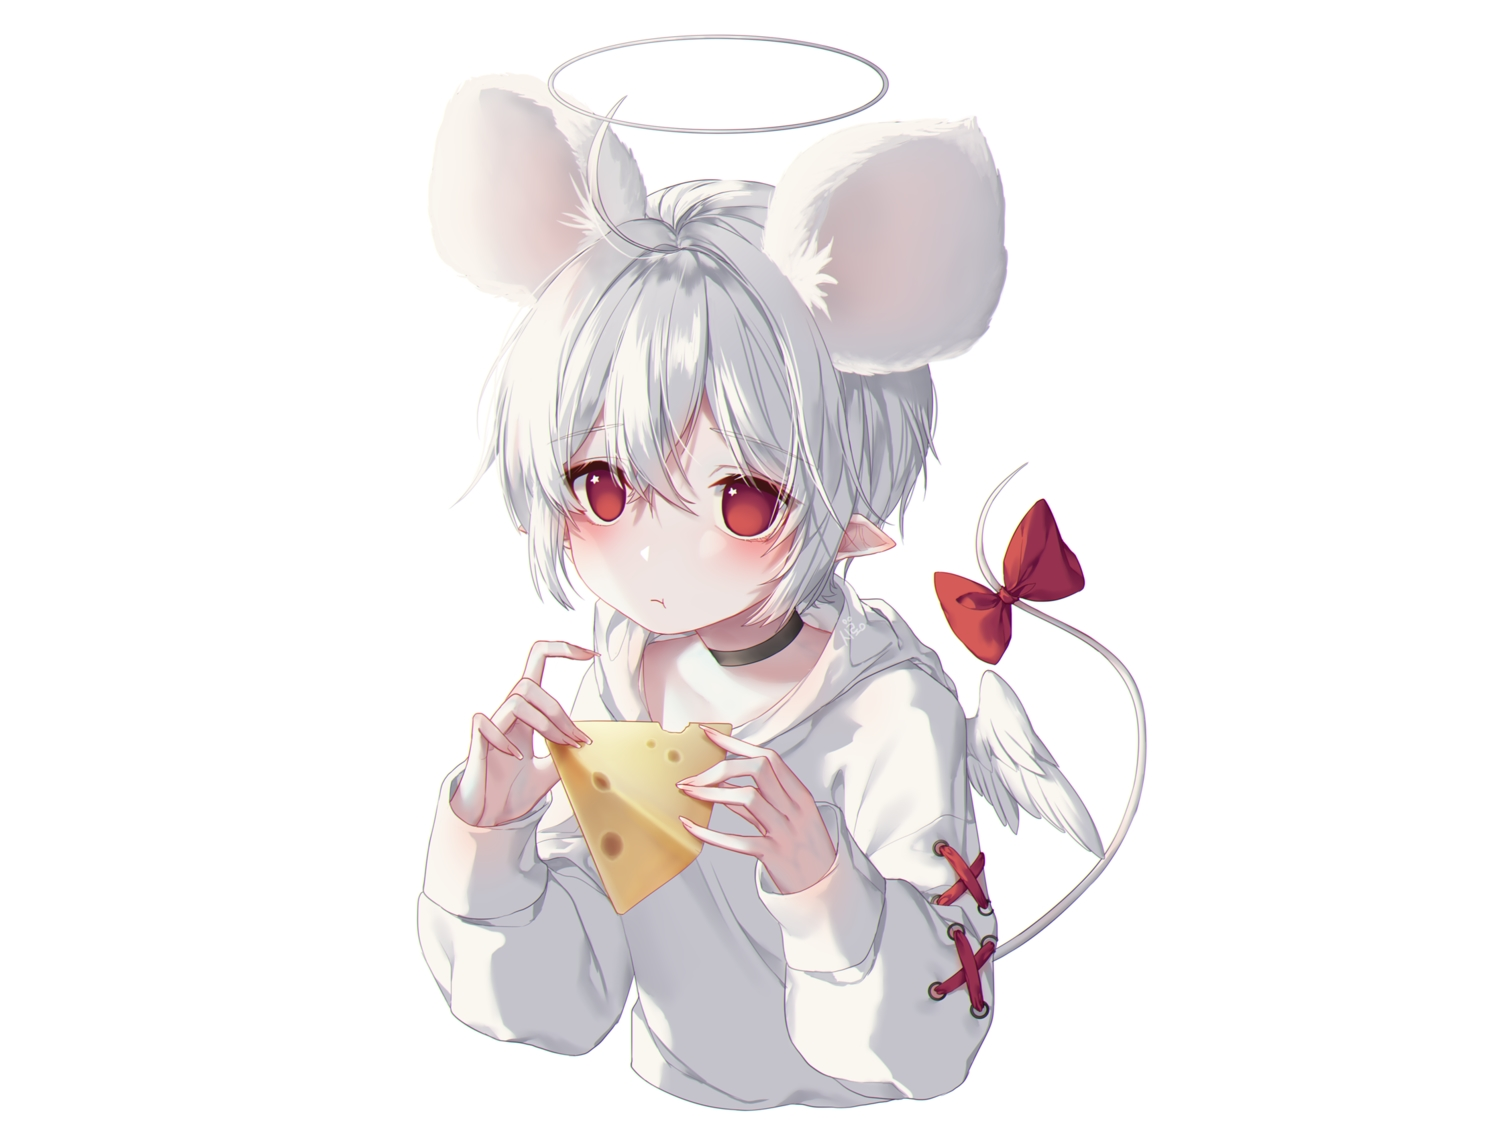 albinoraccoon all_male angel bow choker food halo hoodie male original pointed_ears red_eyes short_hair tail white white_hair wings